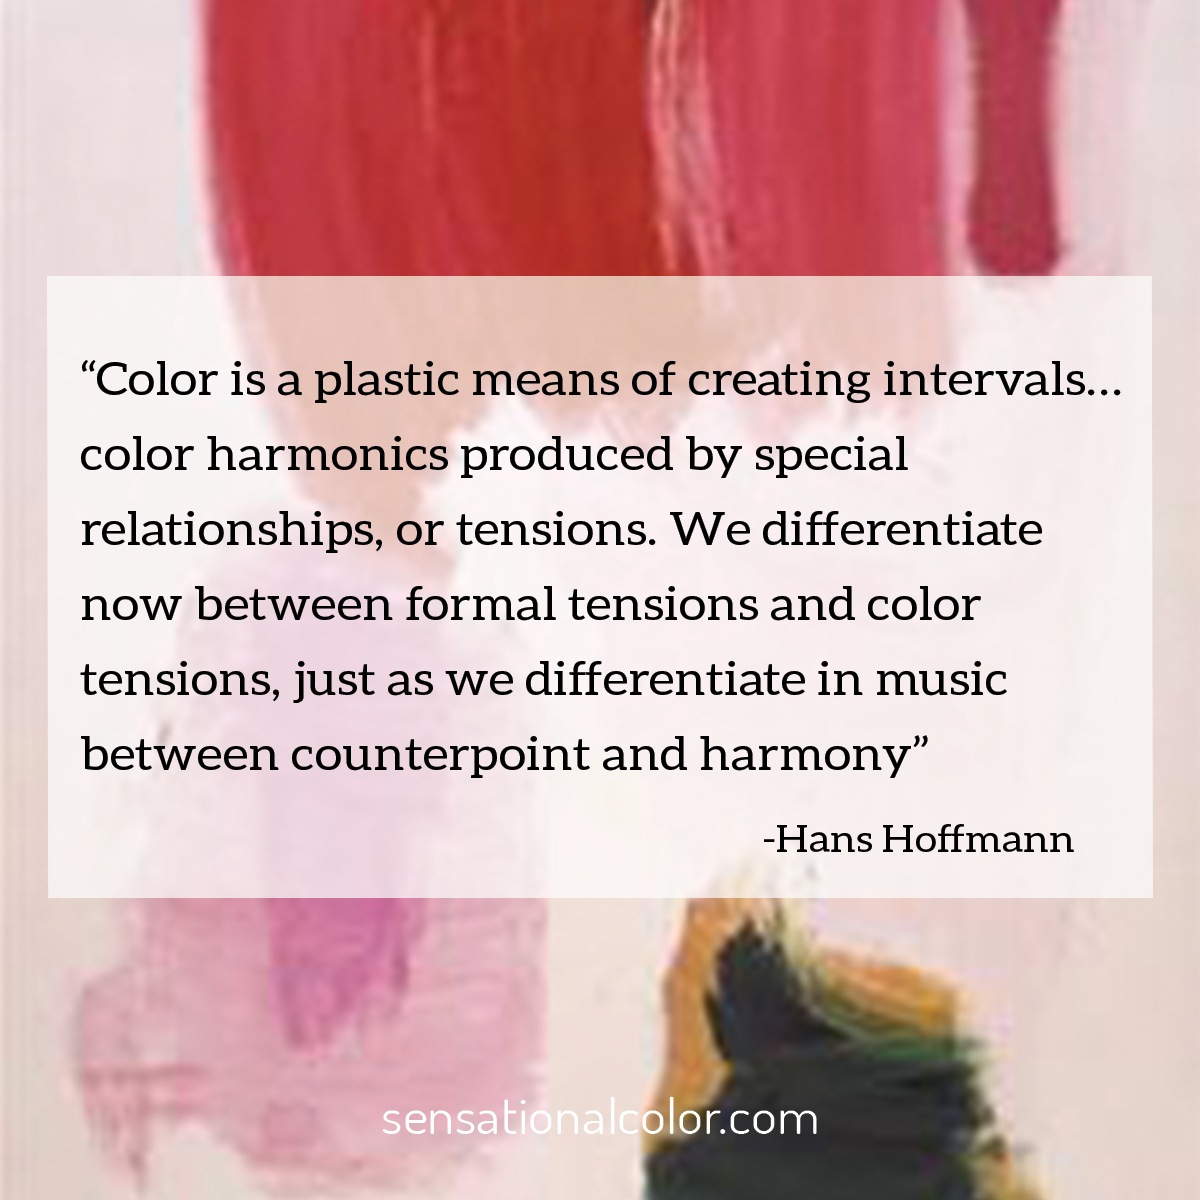 """Color is a plastic means of creating intervals… color harmonics produced by special relationships, or tensions. We differentiate now between formal tensions and color tensions, just as we differentiate in music between counterpoint and harmony.""  - Hans Hofmann"